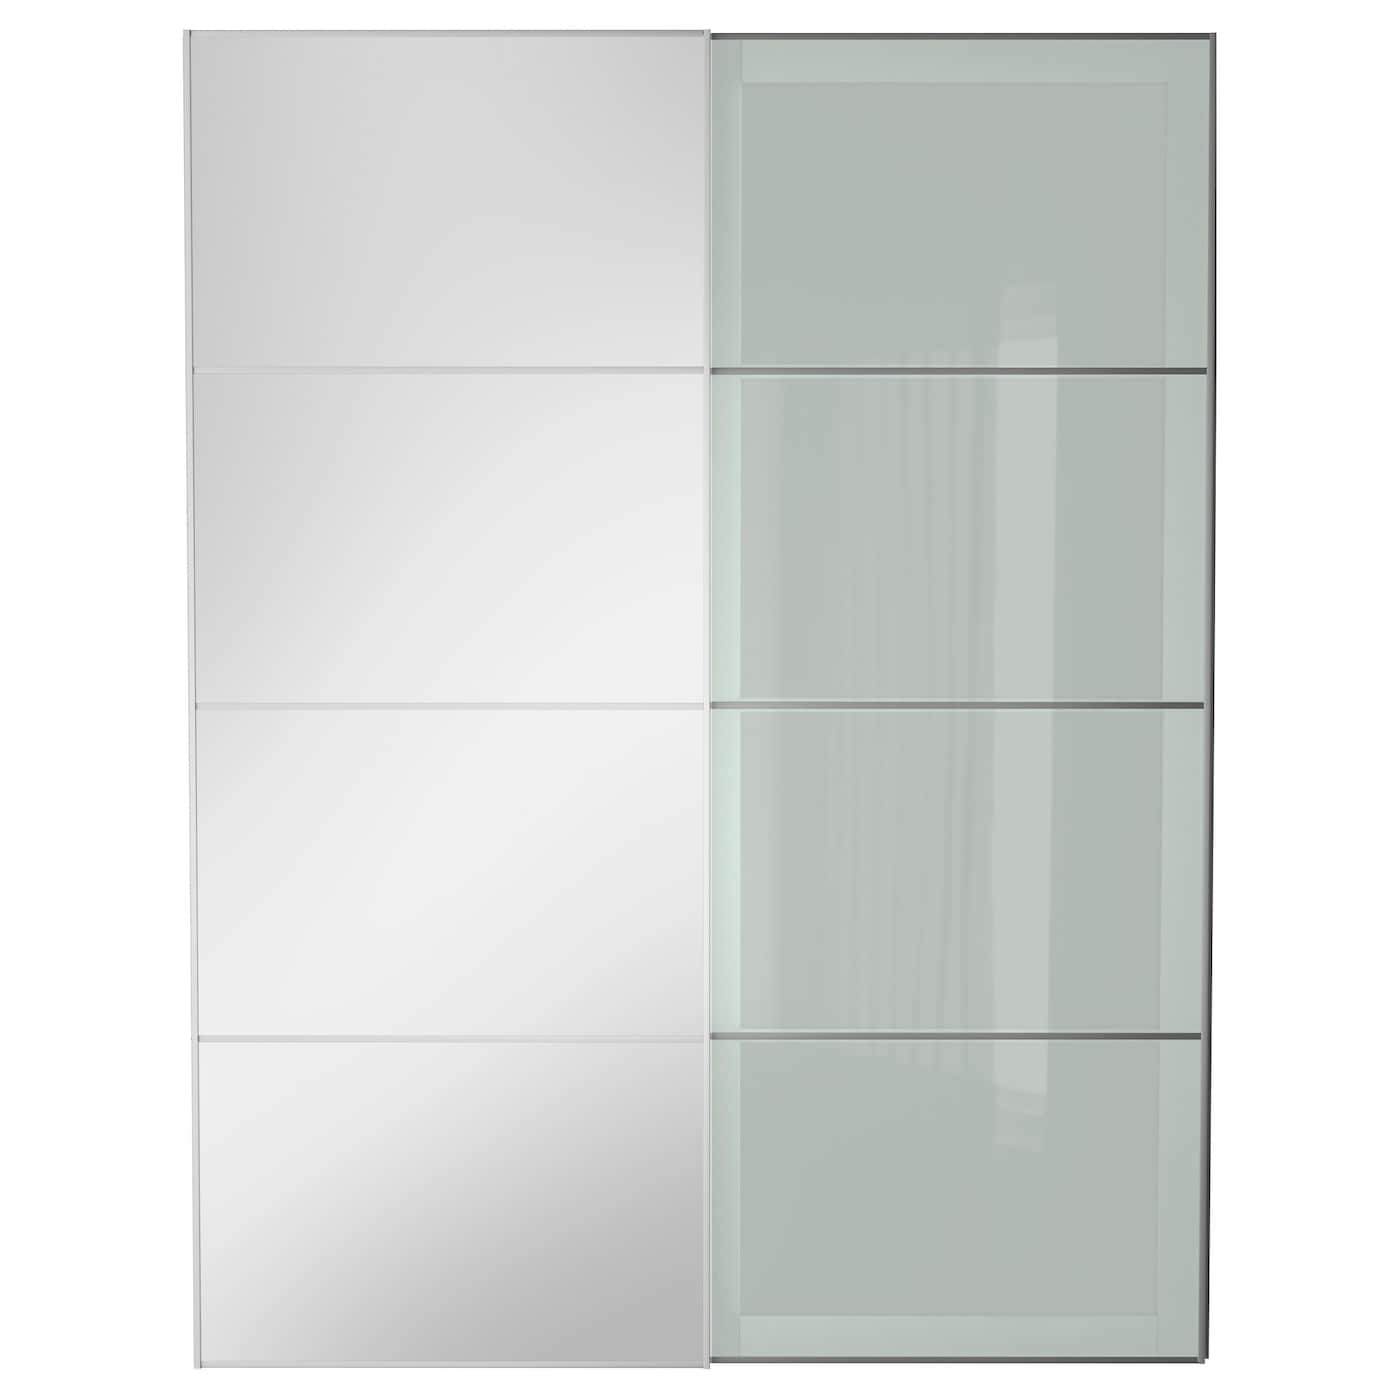 Frosted Closet Doors Ikea Home Furnishings Kitchens Beds